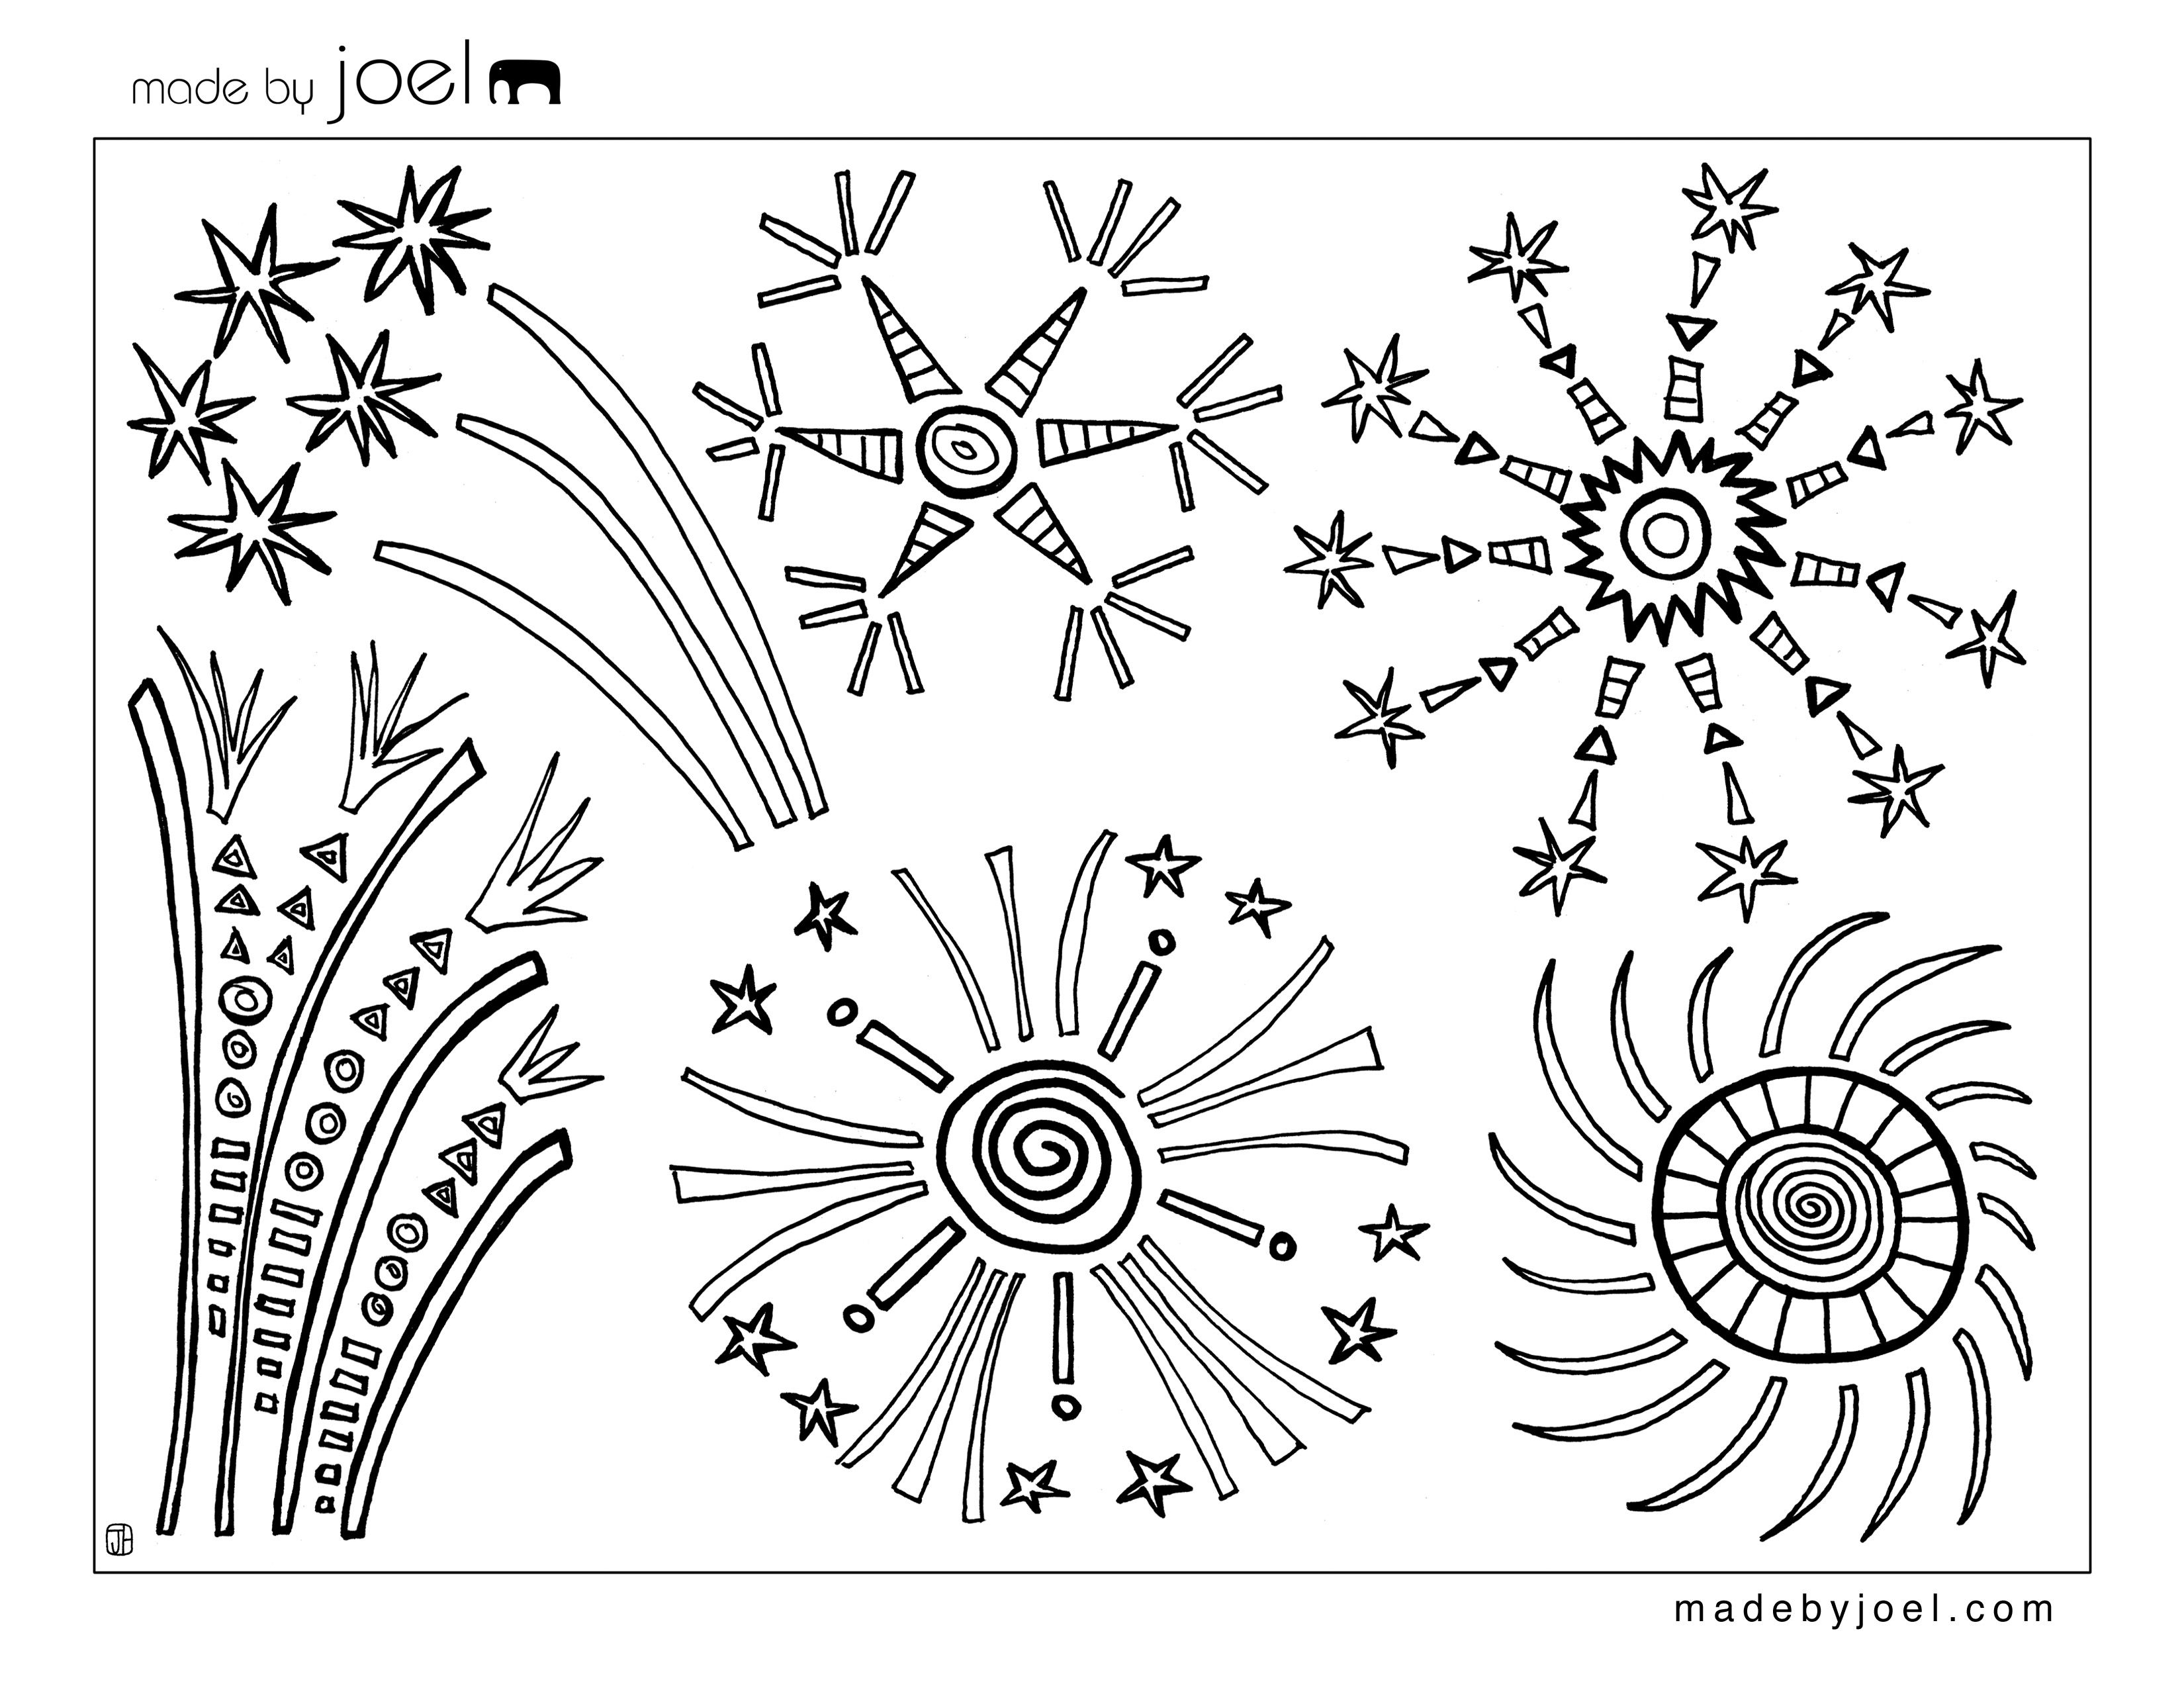 Made By Joel 4th Of July Fireworks Coloring Sheet Firework Colors Free Coloring Sheets July Colors